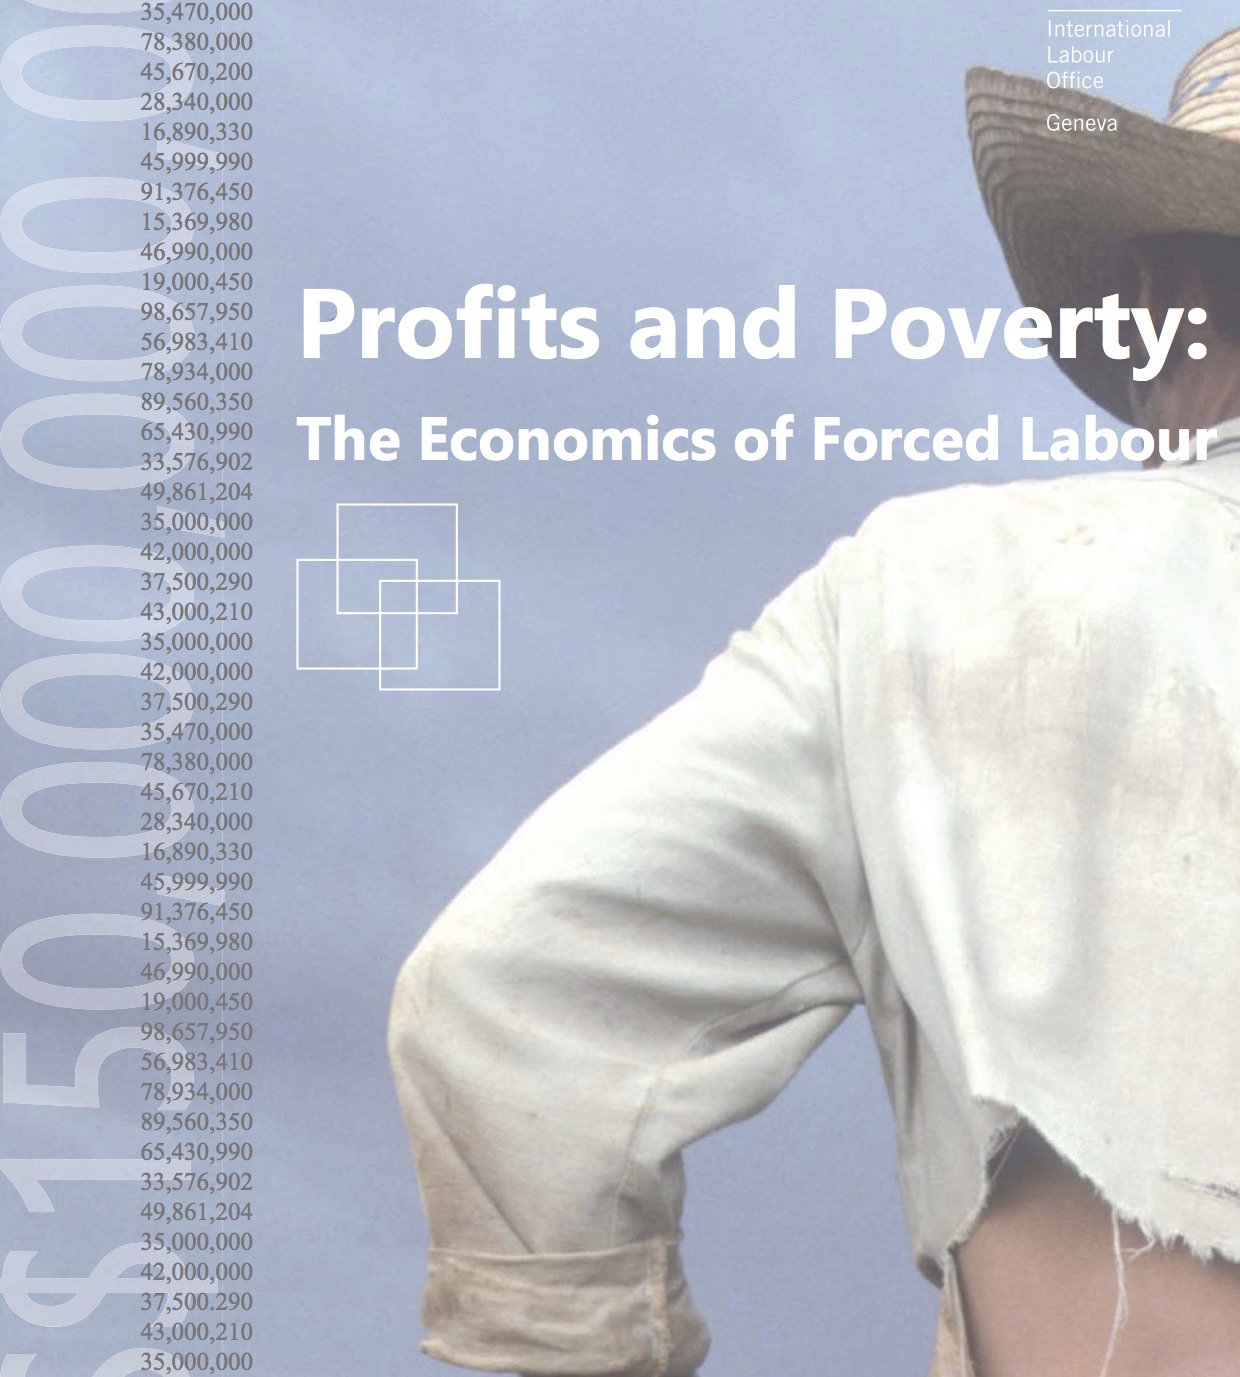 Alex Jacobs: Forced labor remains an issue around the globe